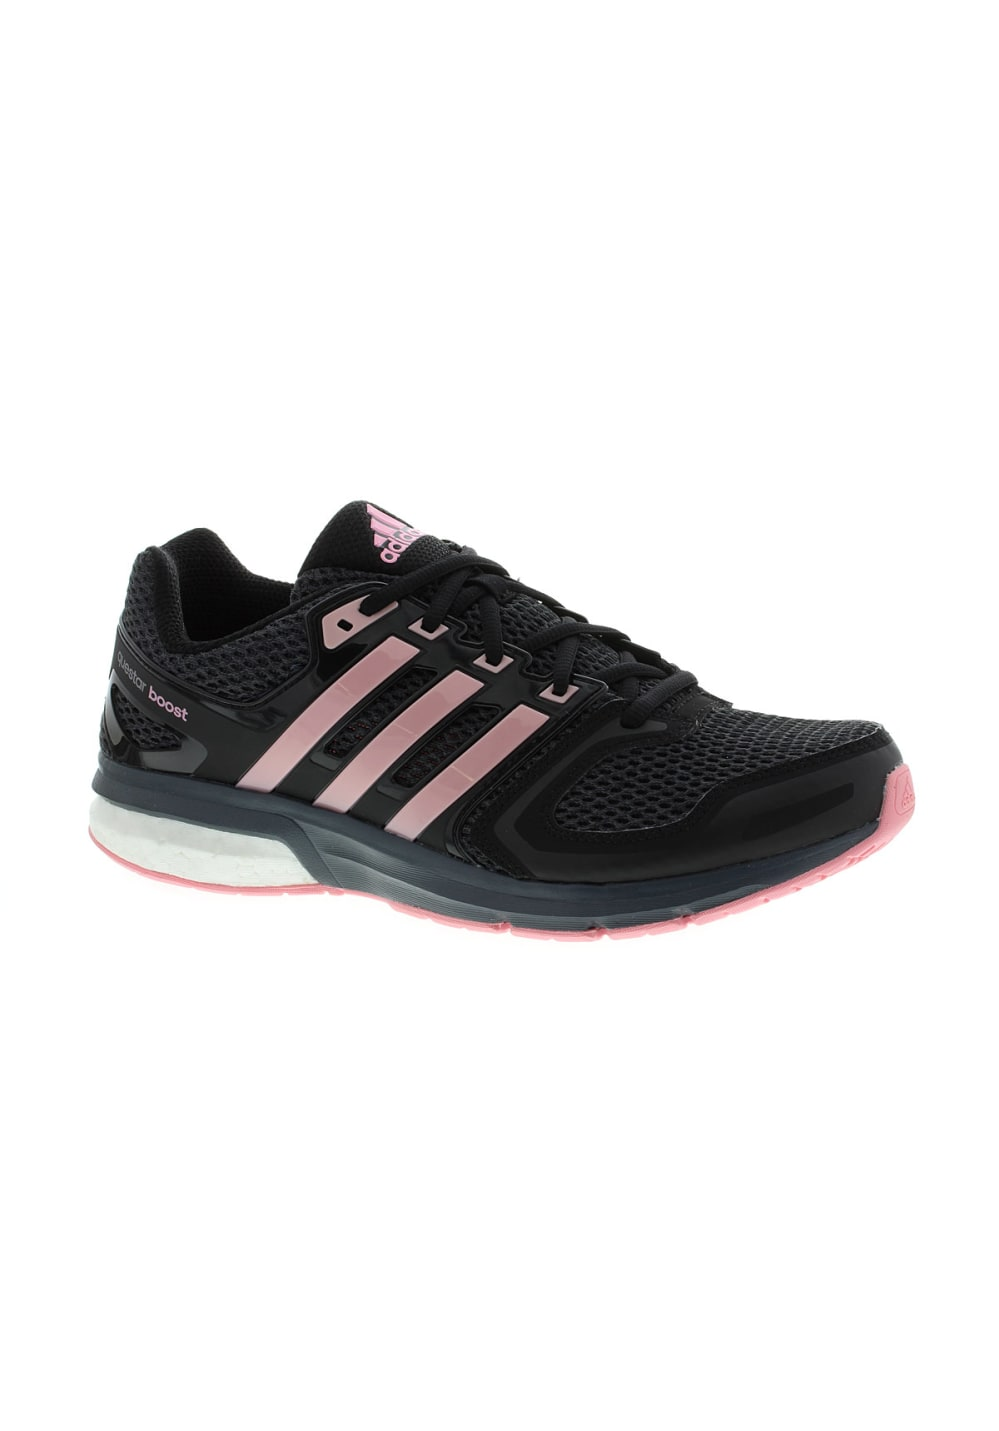 purchase cheap 8f4fb f1aa1 Next. -70%. adidas. Questar Boost - Laufschuhe für Damen